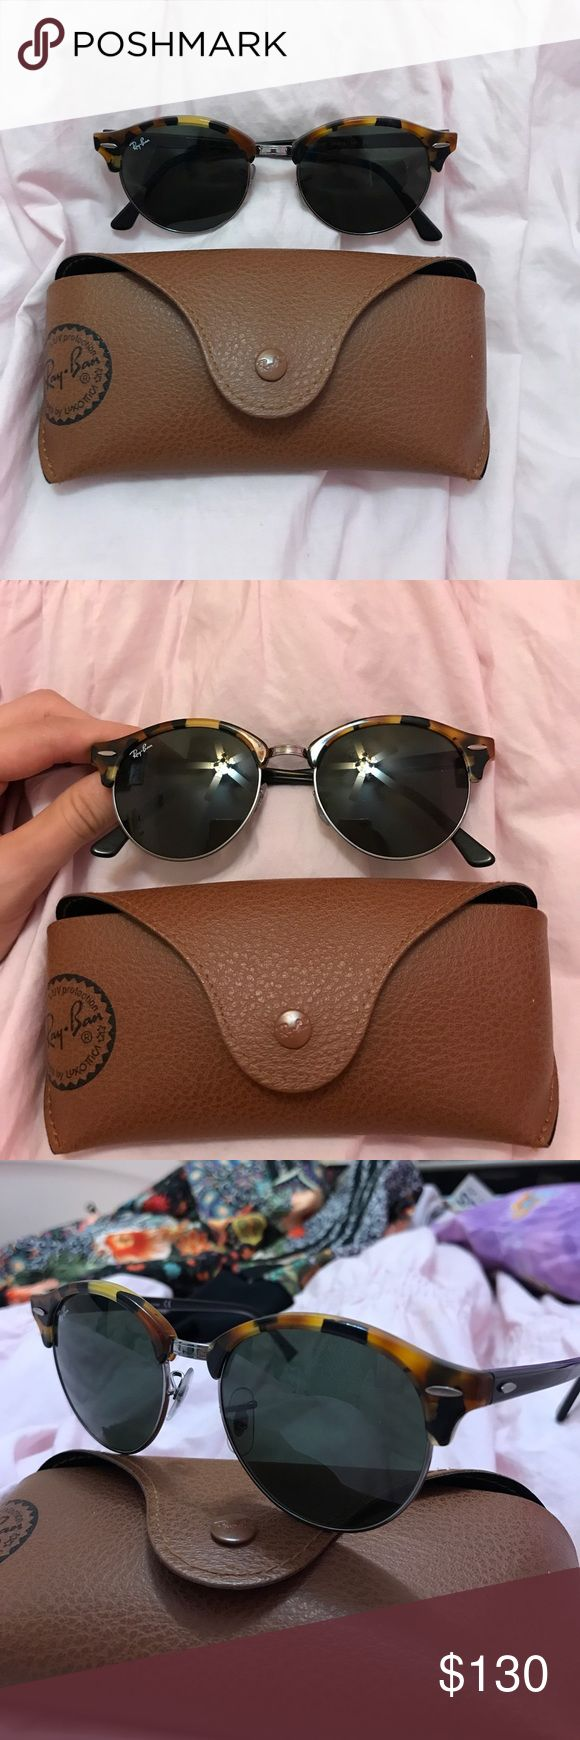 ray ban sunglasses BRAND NEW! rayban sunglasses with case. only worn once, bought at dillard's. open for prices!! 😋💕 Ray-Ban Accessories Sunglasses